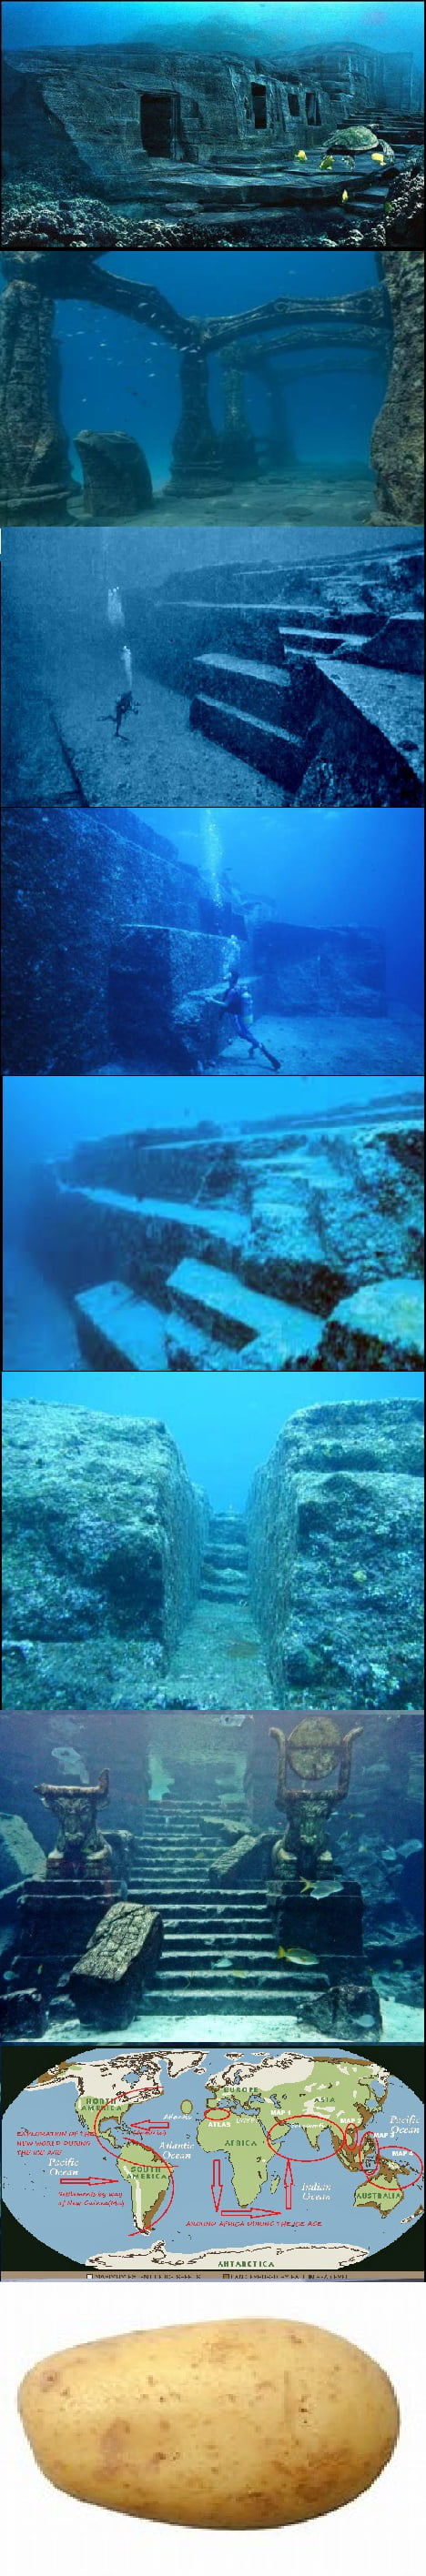 Japan's Ancient Under Water Temple, 10,000 year old 350 ft underwater?